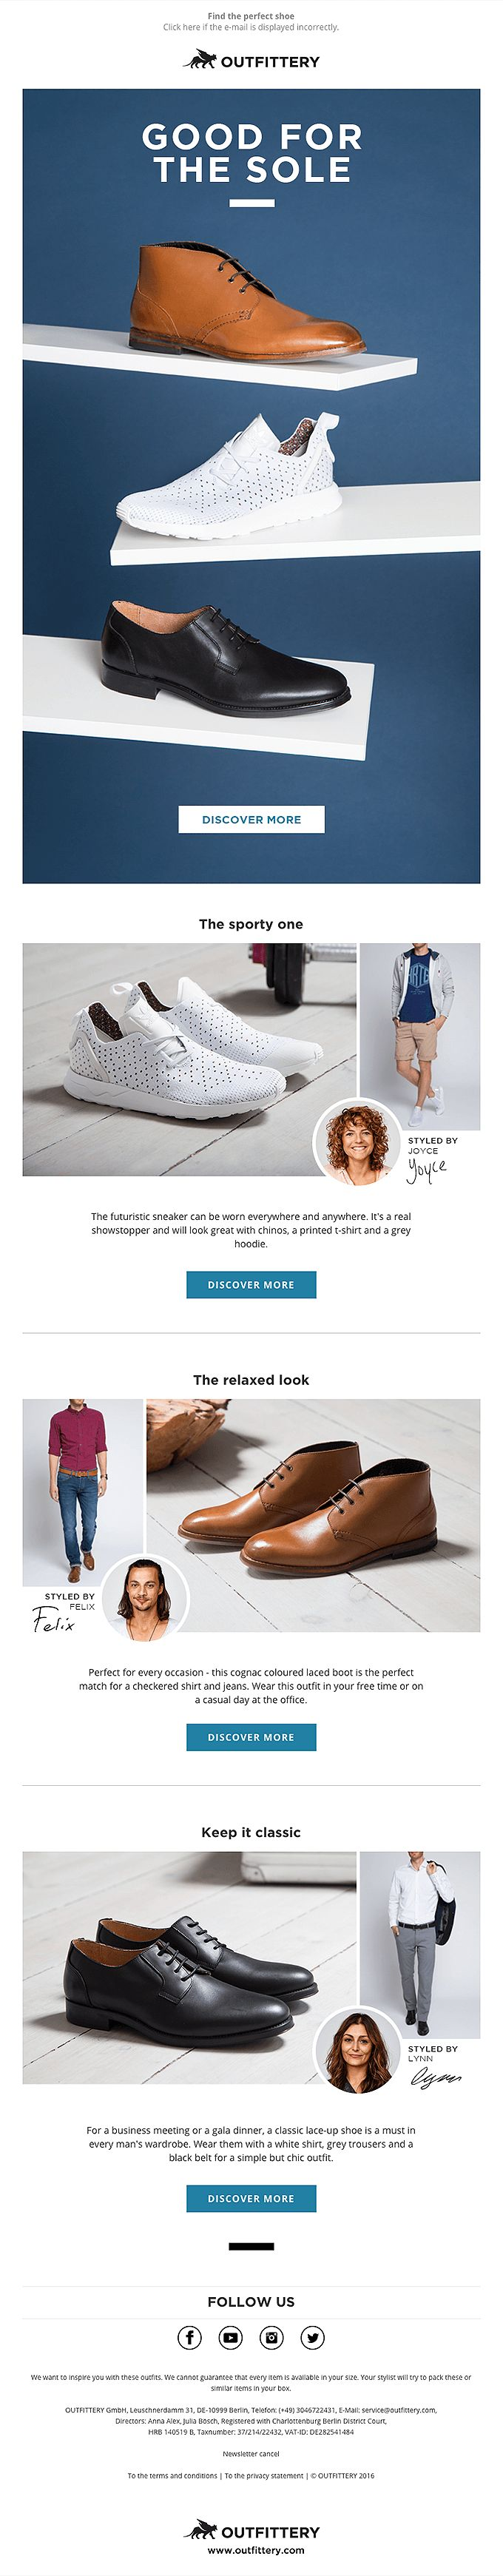 551 best Email Marketing Magic images on Pinterest | Digital ...